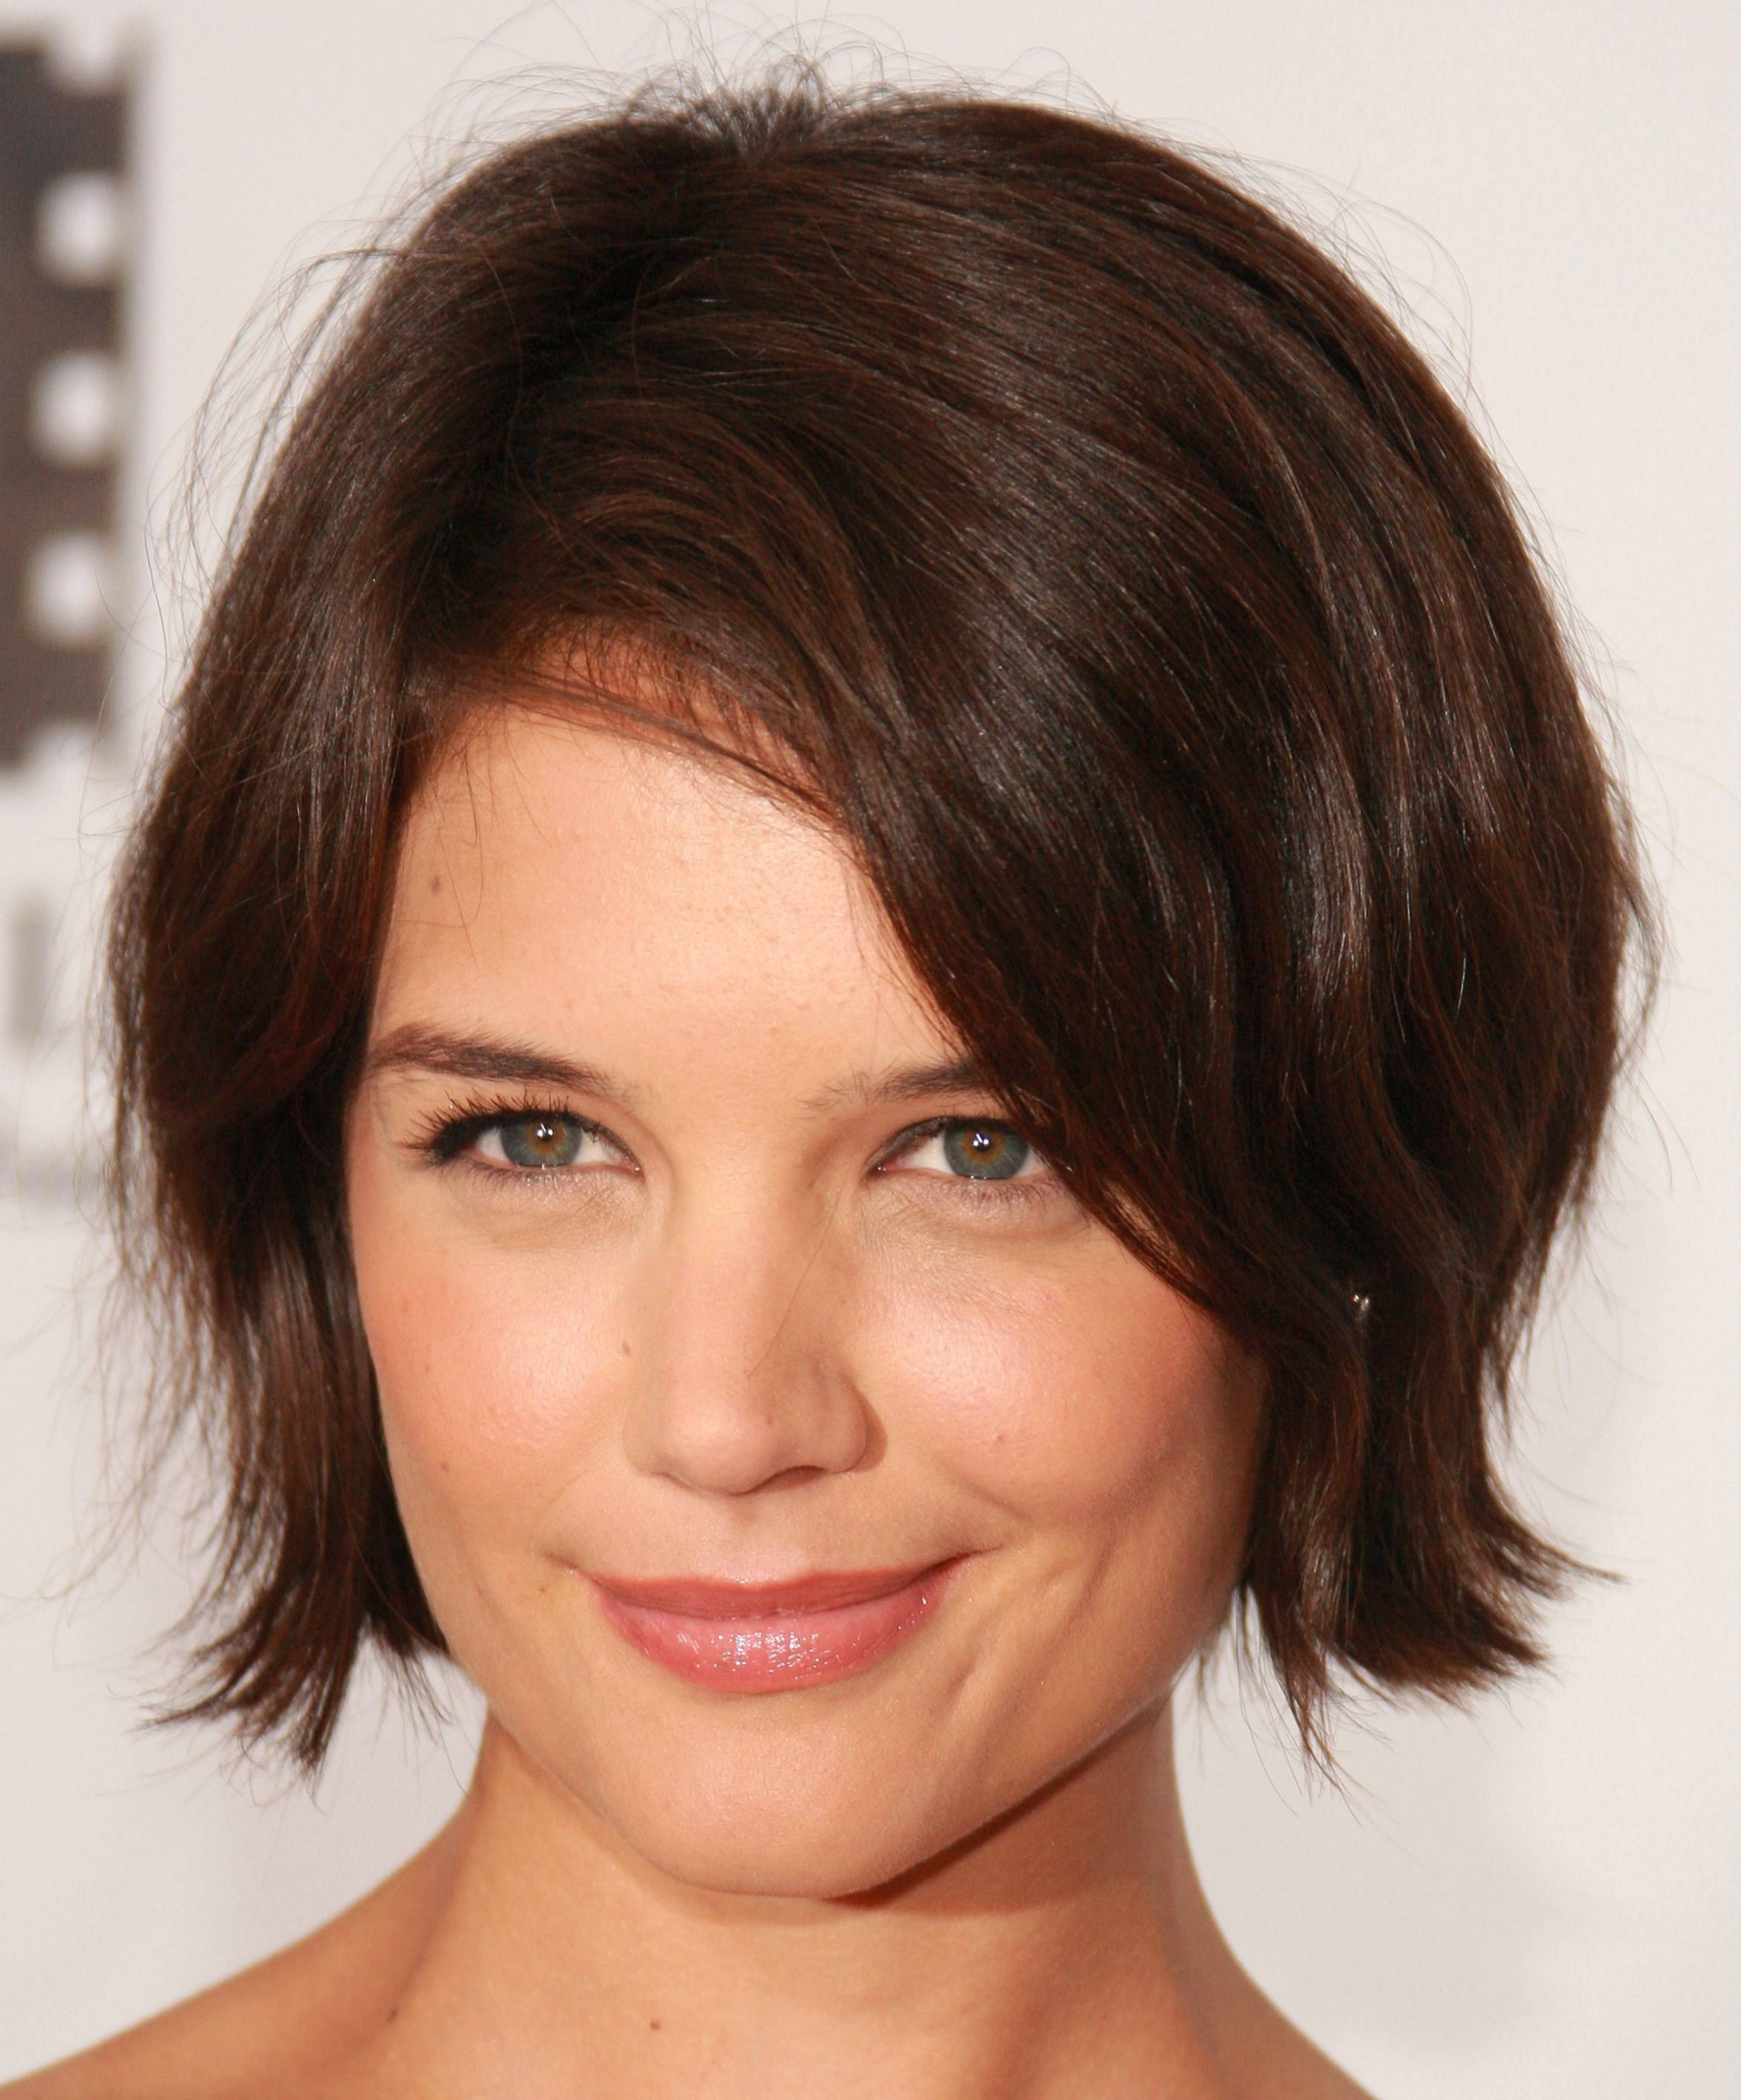 Best Short Hairstyles – Cute Hair Cut Guide For Round Face Shape Intended For Short Short Haircuts For Round Faces (View 17 of 25)